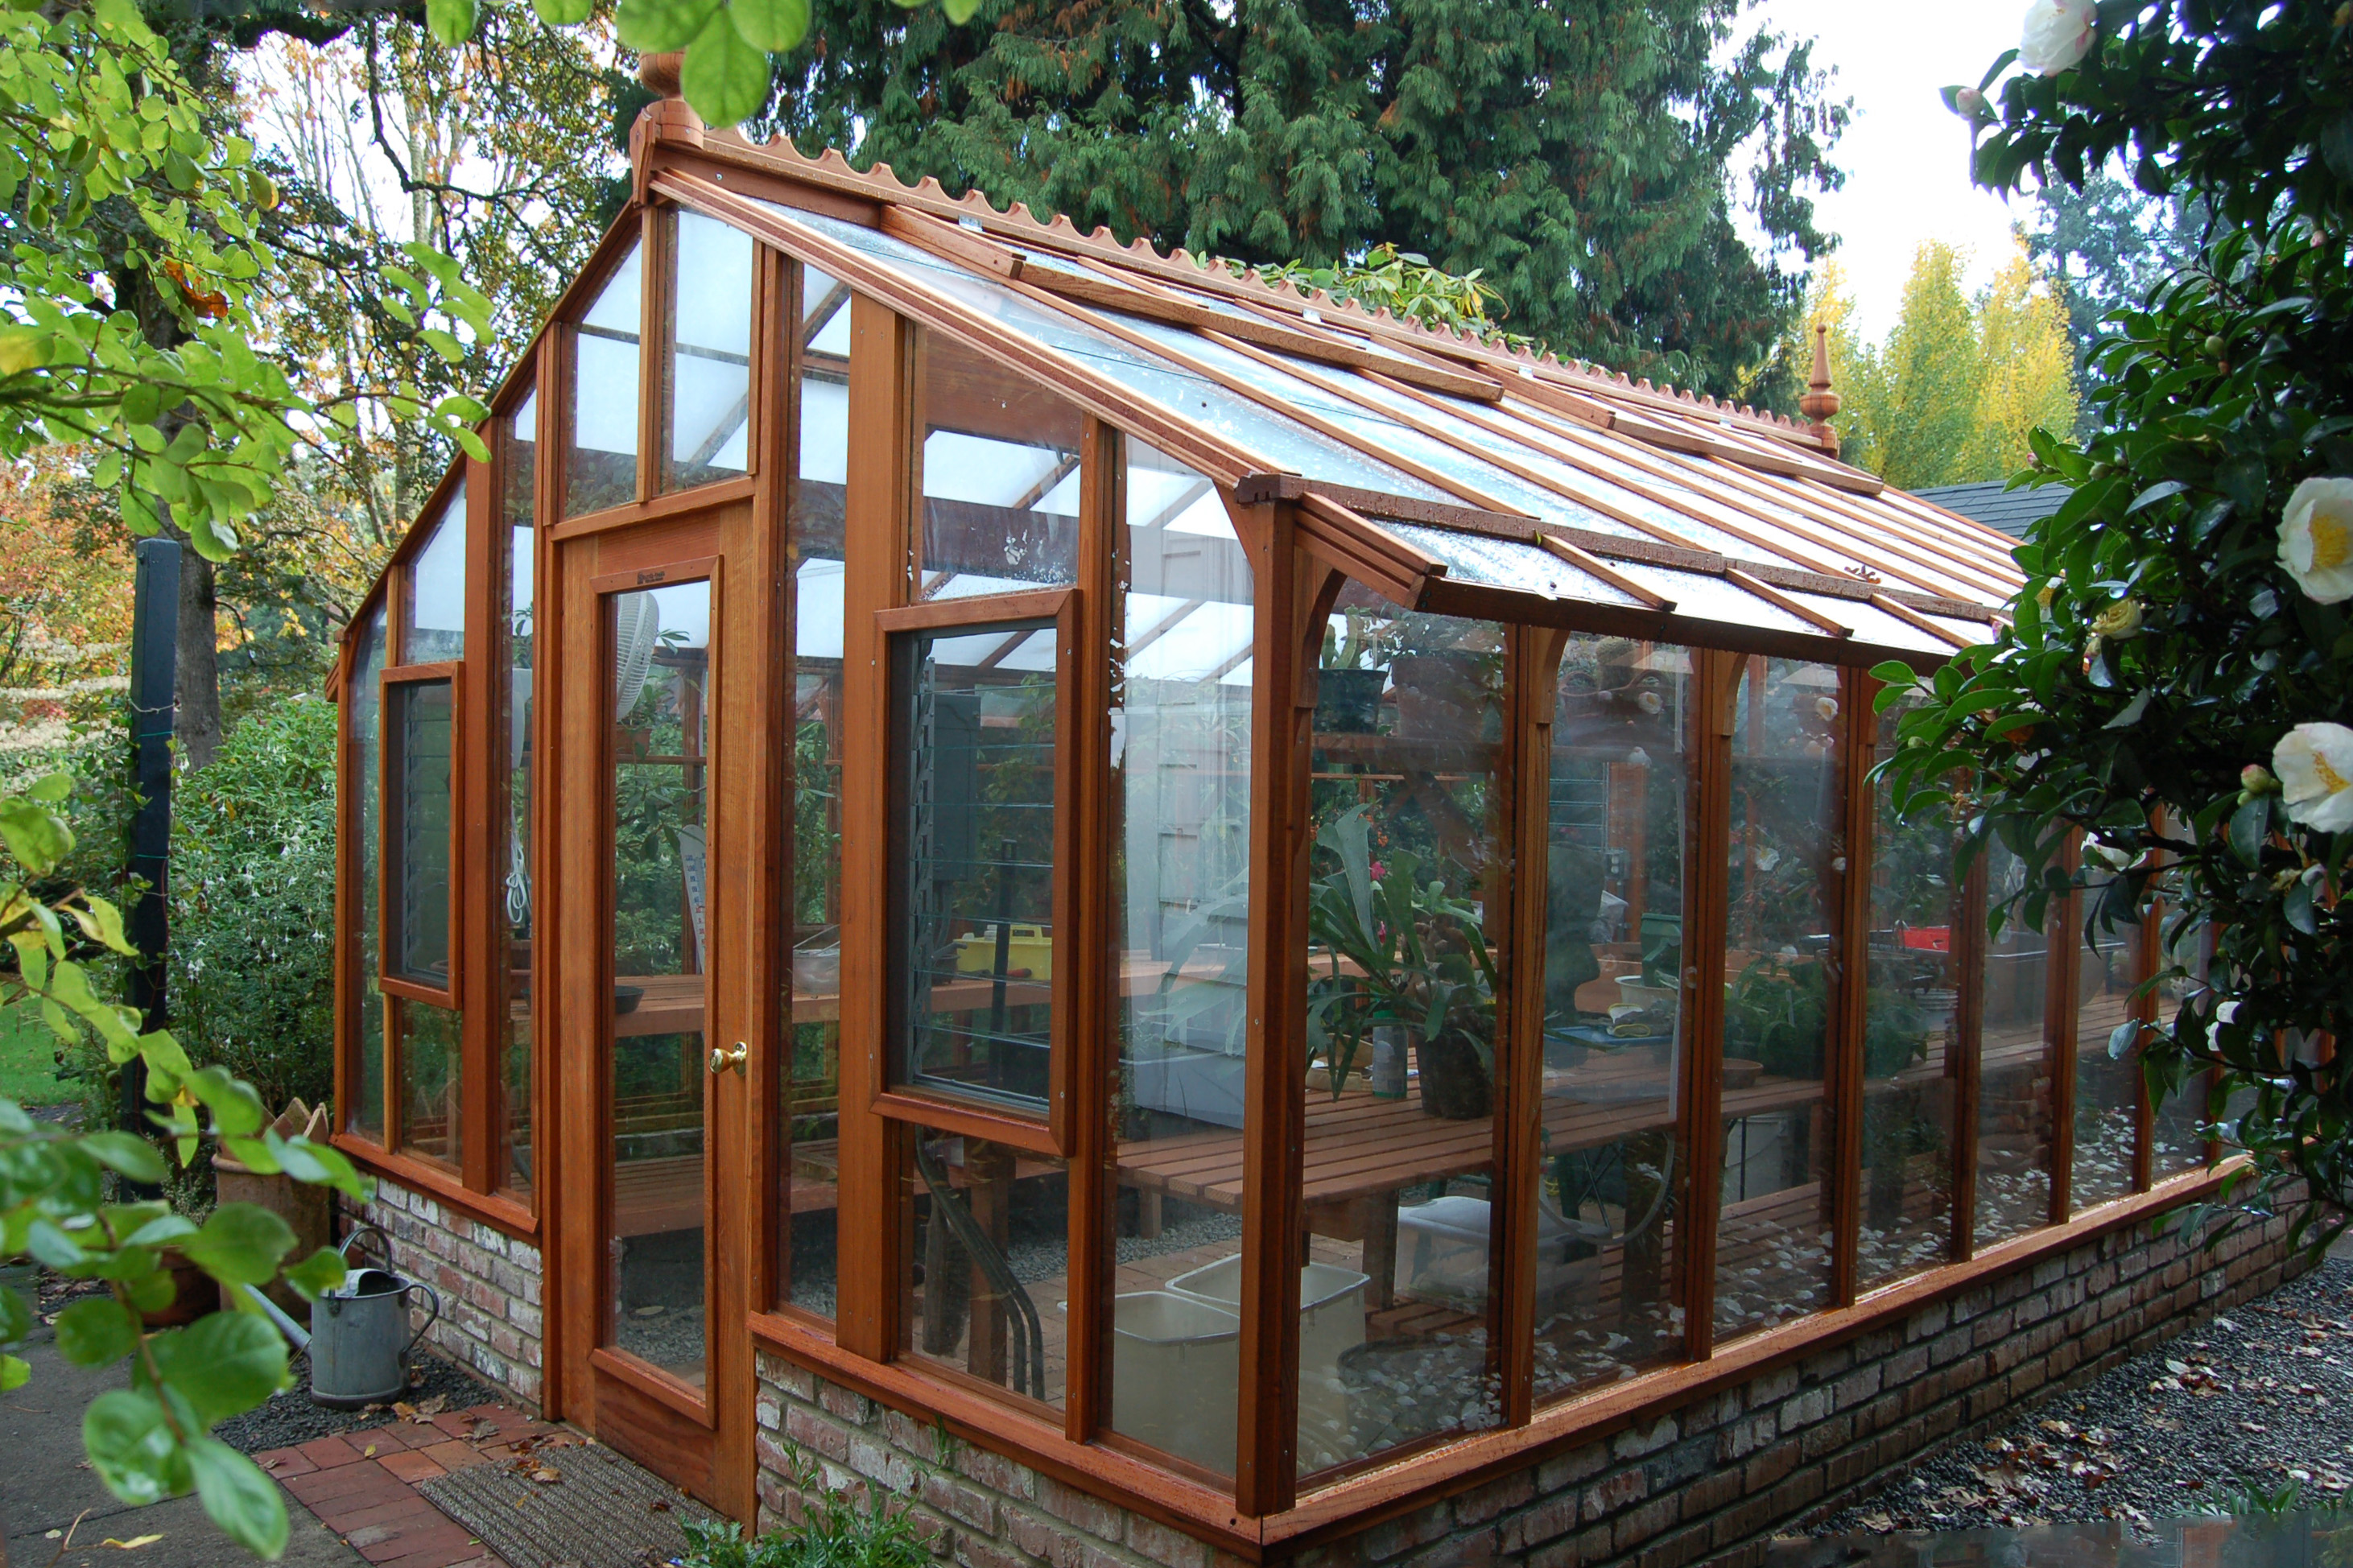 David Burke Kitchen Garden Home Garden Greenhouse Attached Greenhouse Project Attached Home